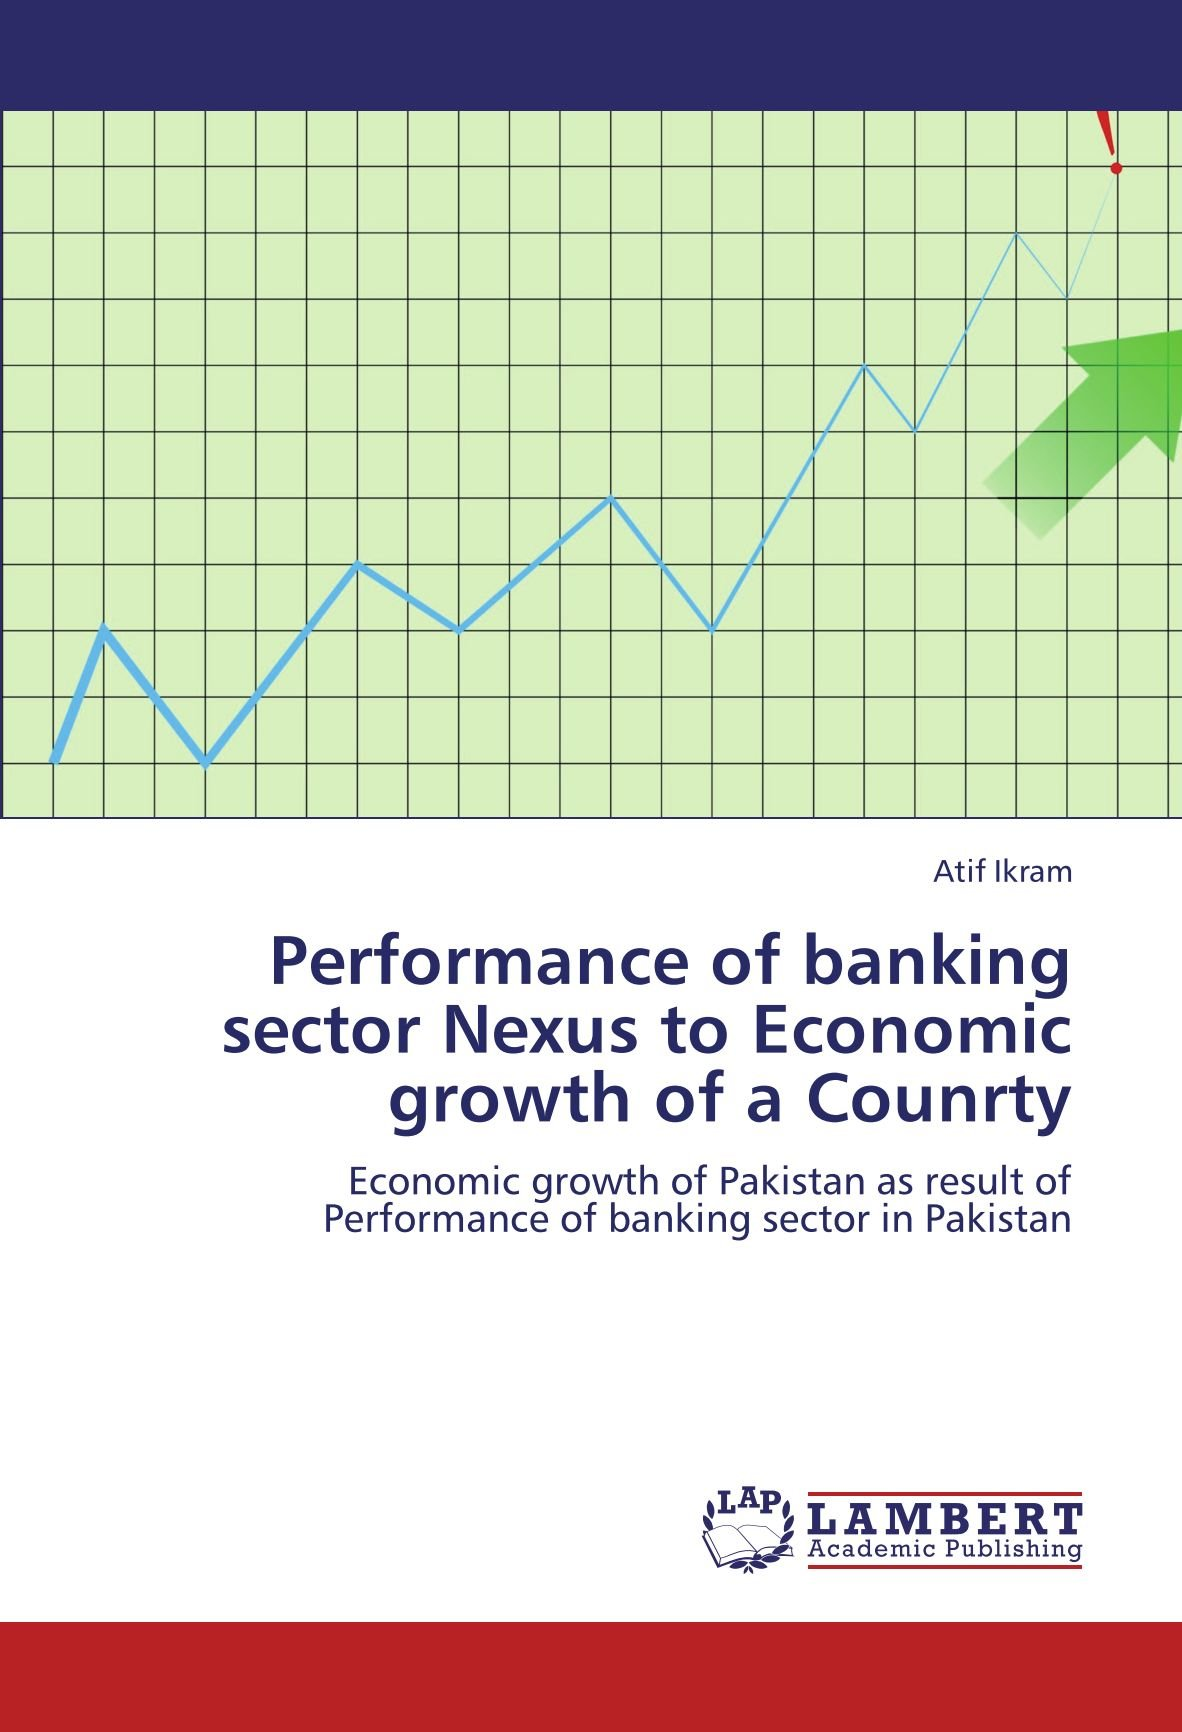 Download Performance of banking sector Nexus to Economic growth of a Counrty: Economic growth of Pakistan as result of Performance of banking sector in Pakistan ebook